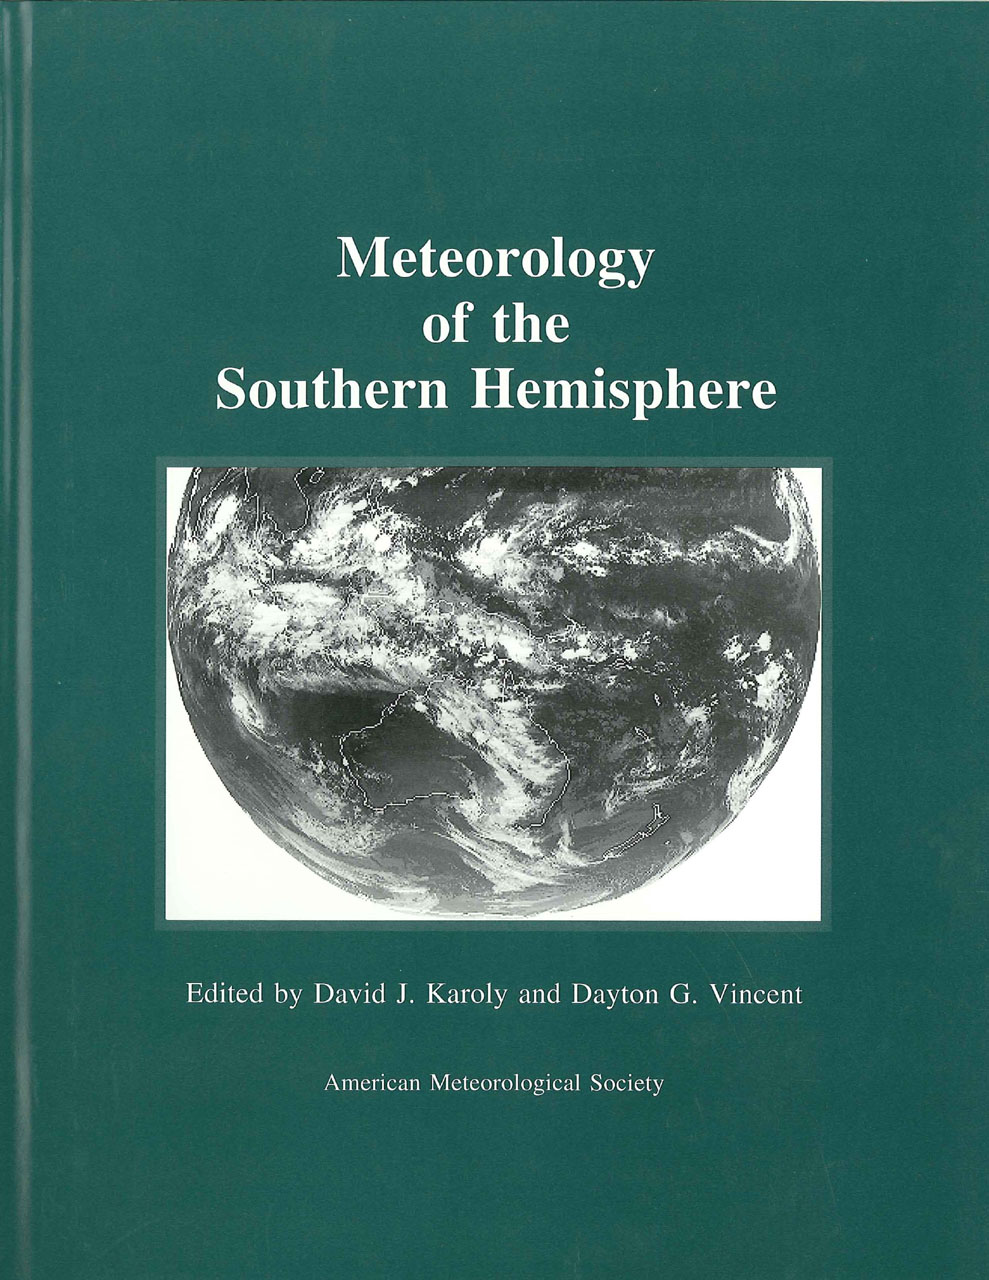 Meteorology of the Southern Hemisphere